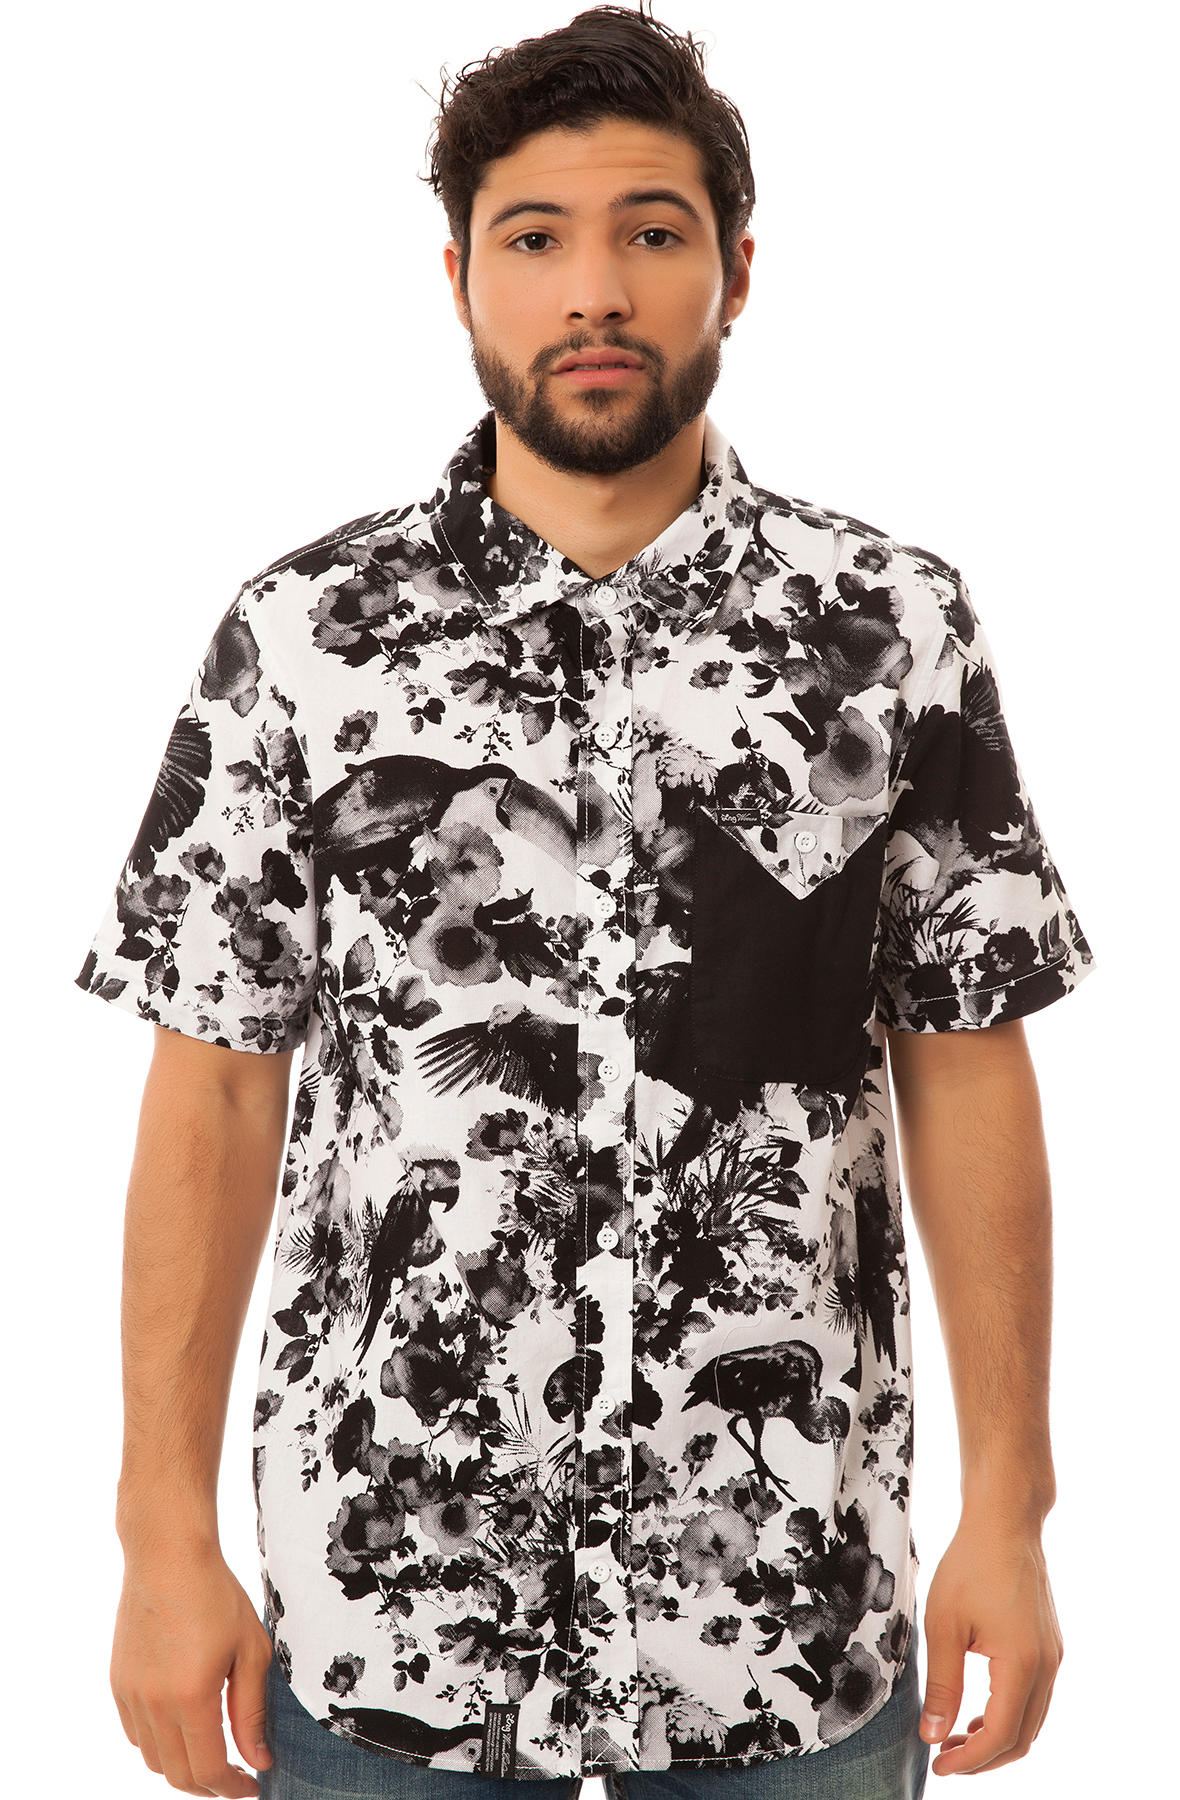 Lrg short sleeve button down shirt in black for men white for Heavy button down shirts